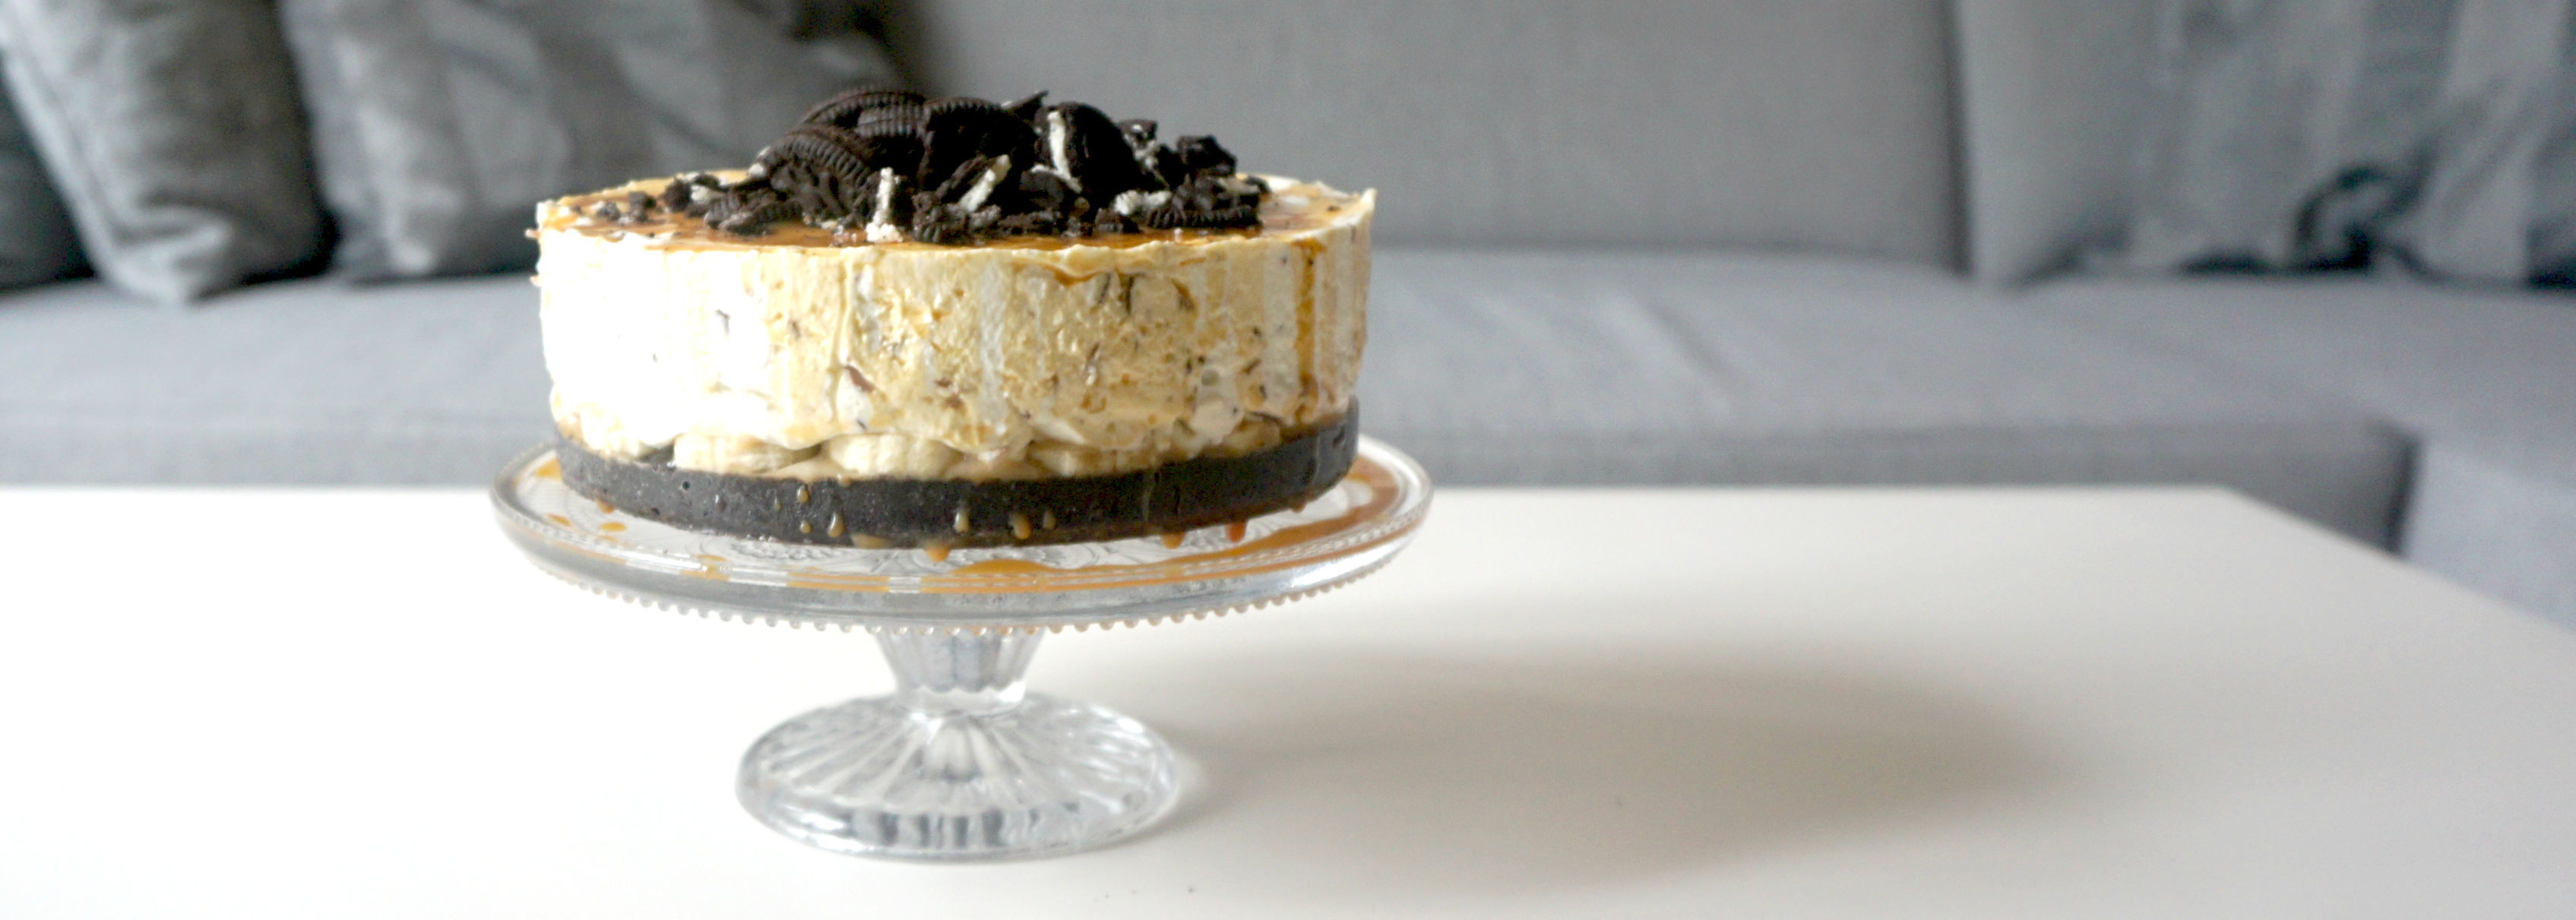 Miss Malvina Enjoy Life Recipe No Bake Oreo Cake desert